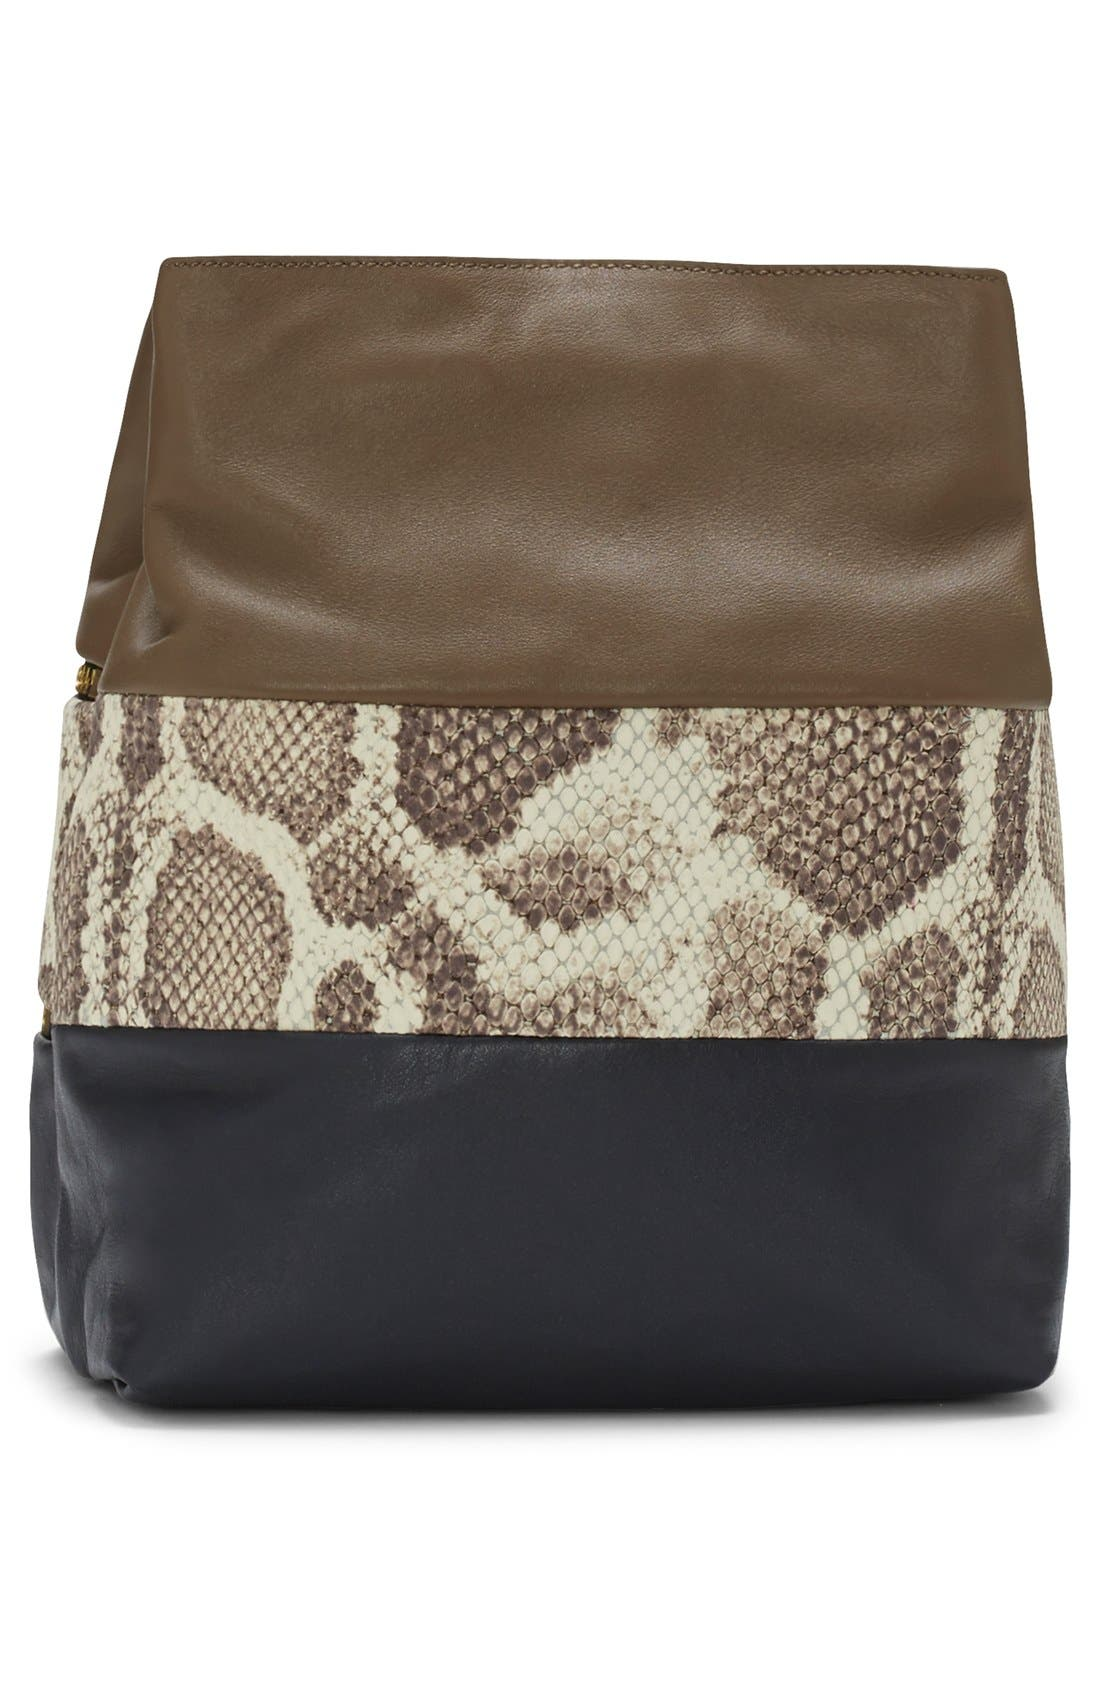 Alternate Image 2  - Vince Camuto 'Meg' Pebbled Leather Bucket Bag